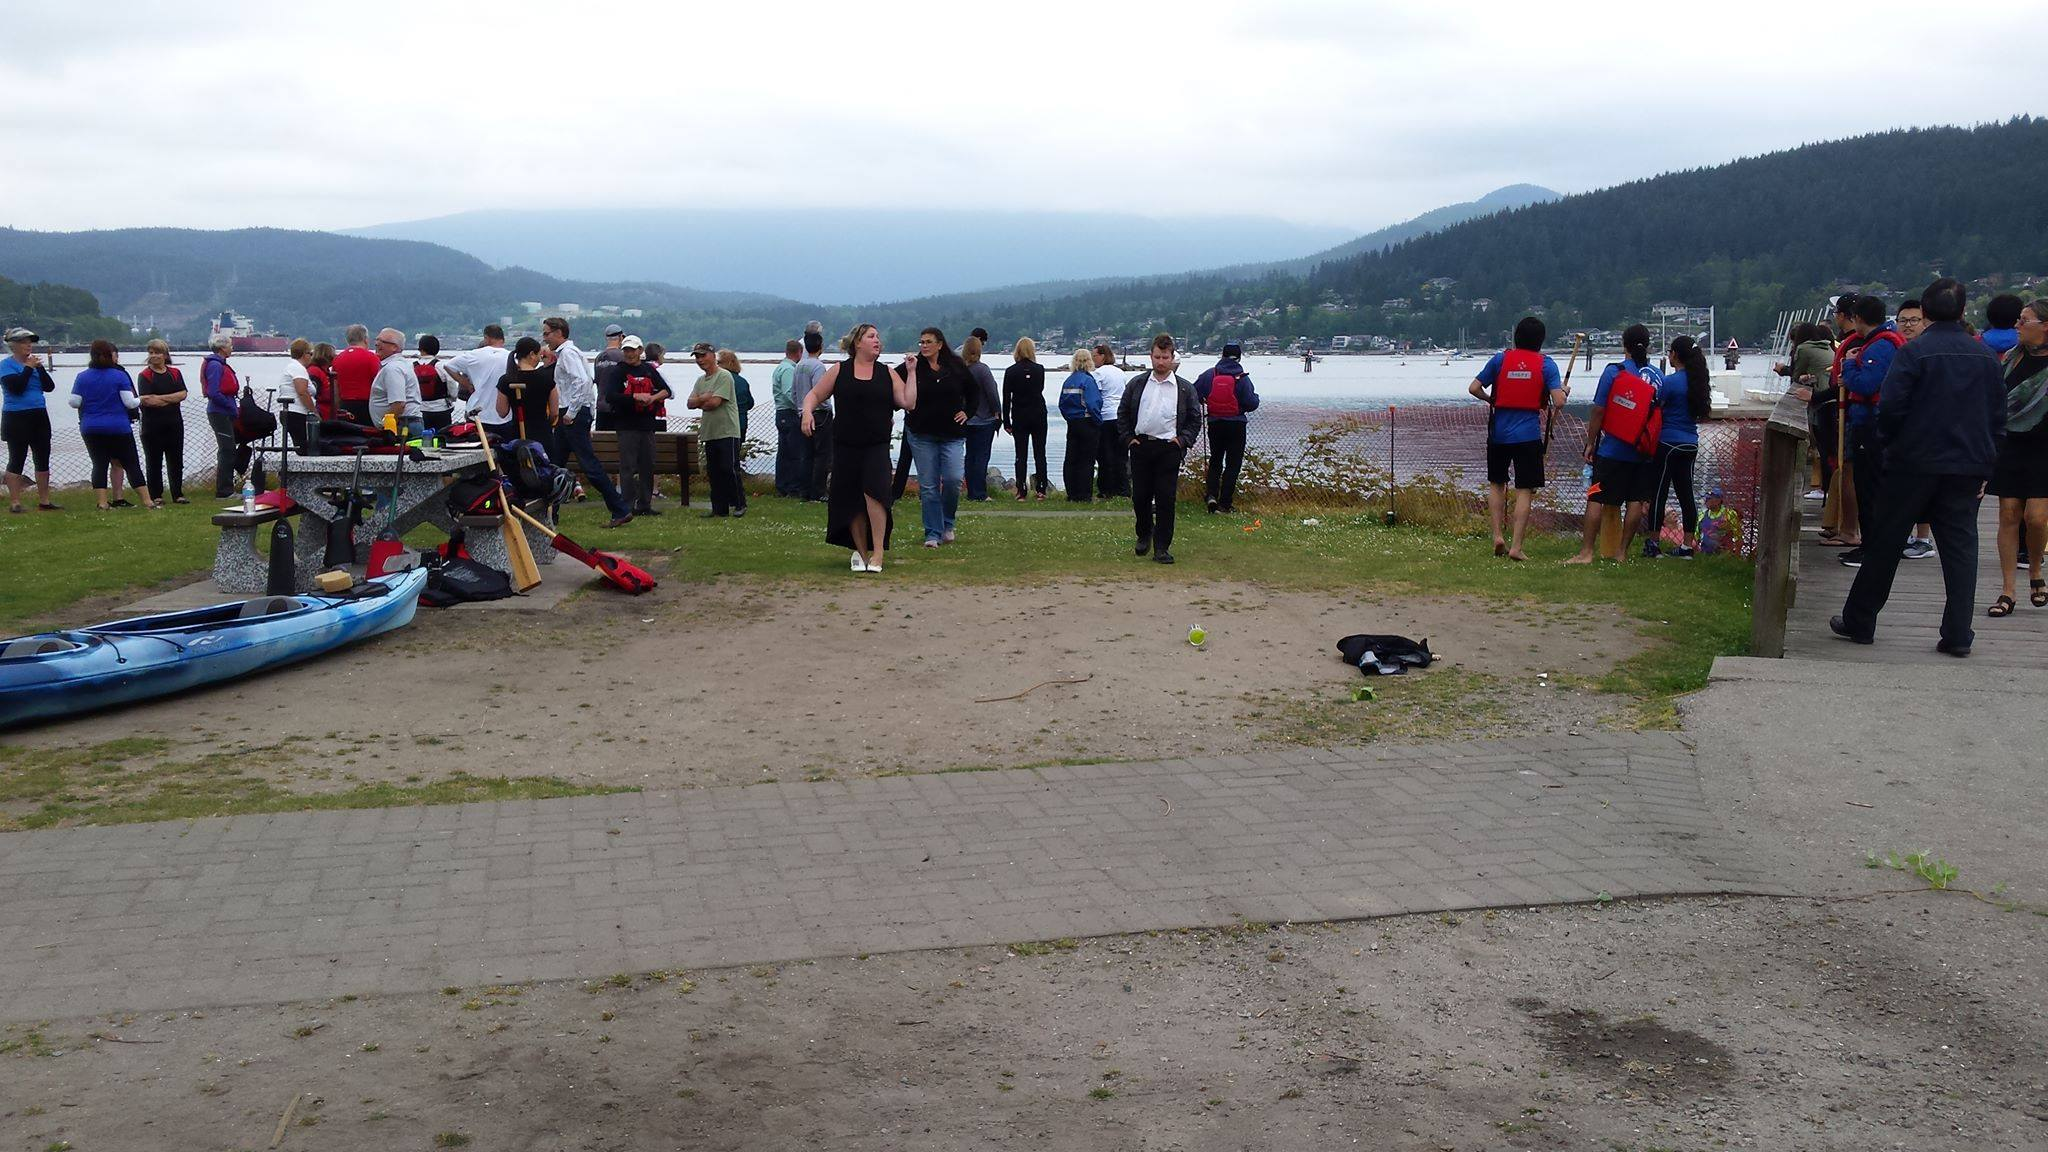 This is from the vantage point of where the car drove toward the water. People in this scene were looking down at the Toyota, but this is the direct path she took when she drove through our training warmup. Photo: Robbin Whachell